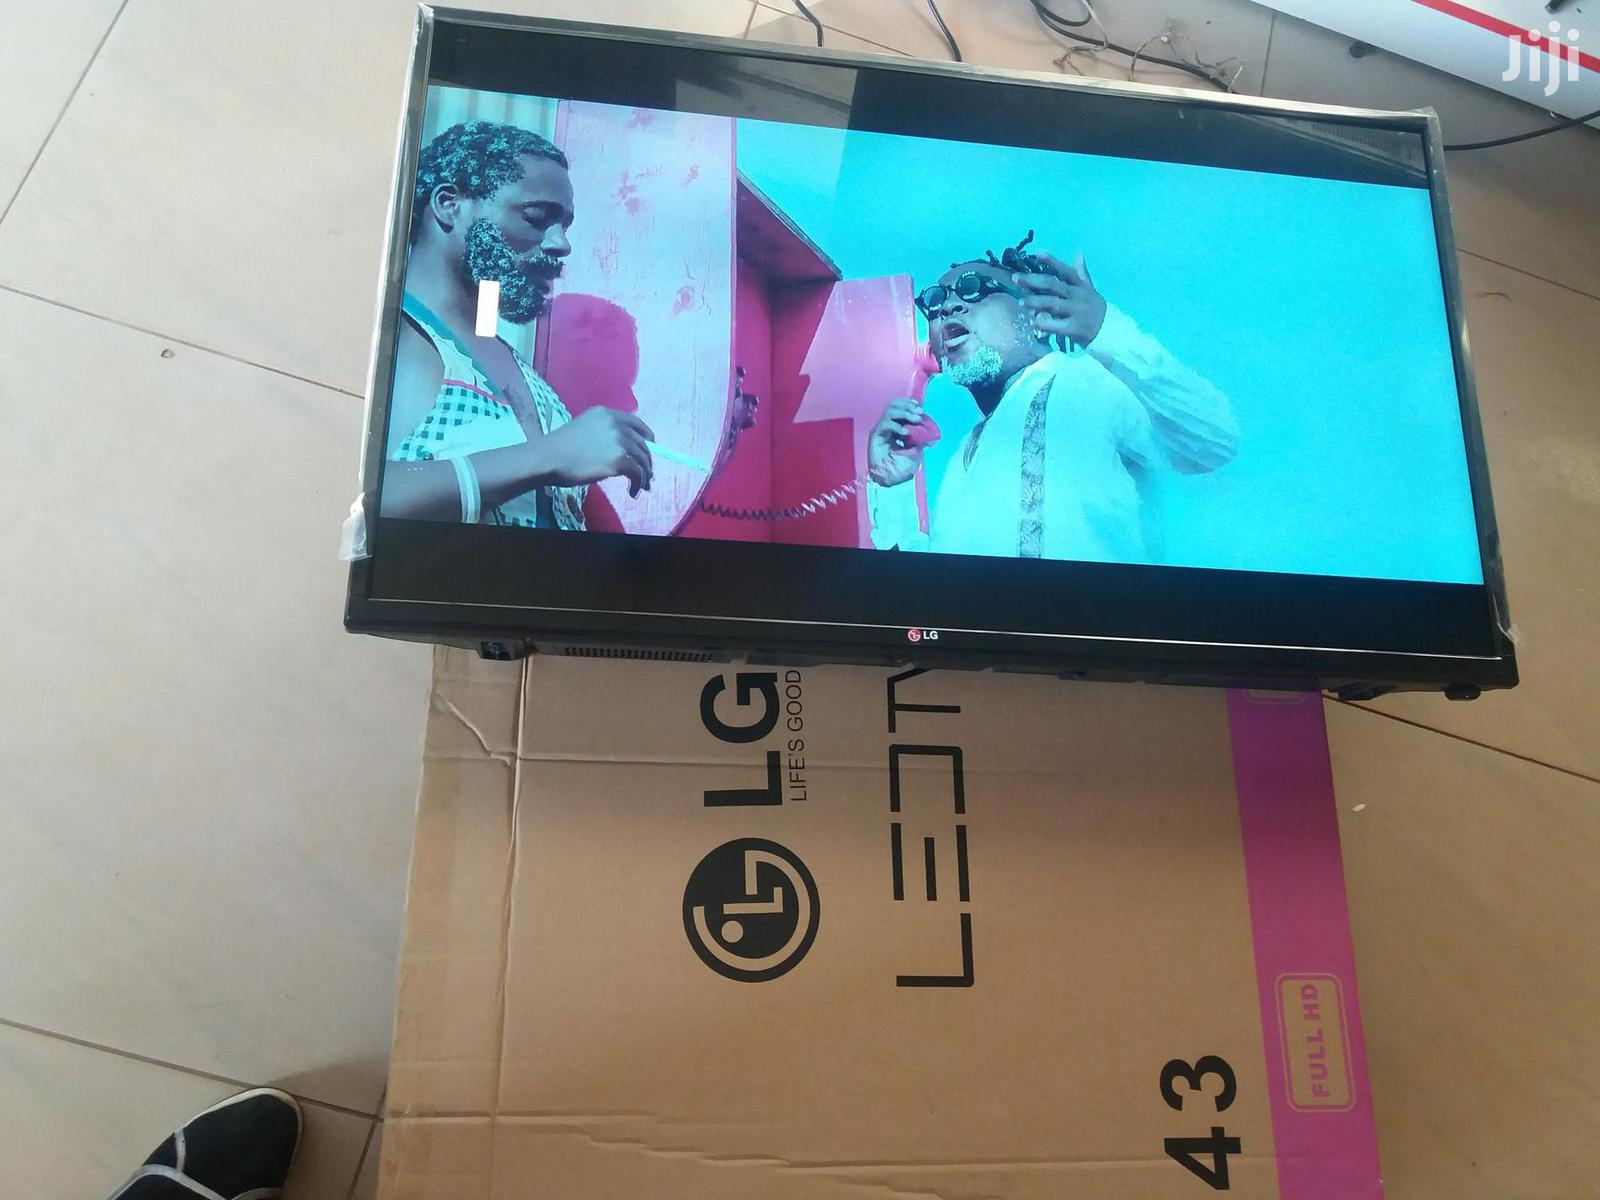 LG Flat Screen Digital Tv 43 Inches | TV & DVD Equipment for sale in Kampala, Central Region, Uganda